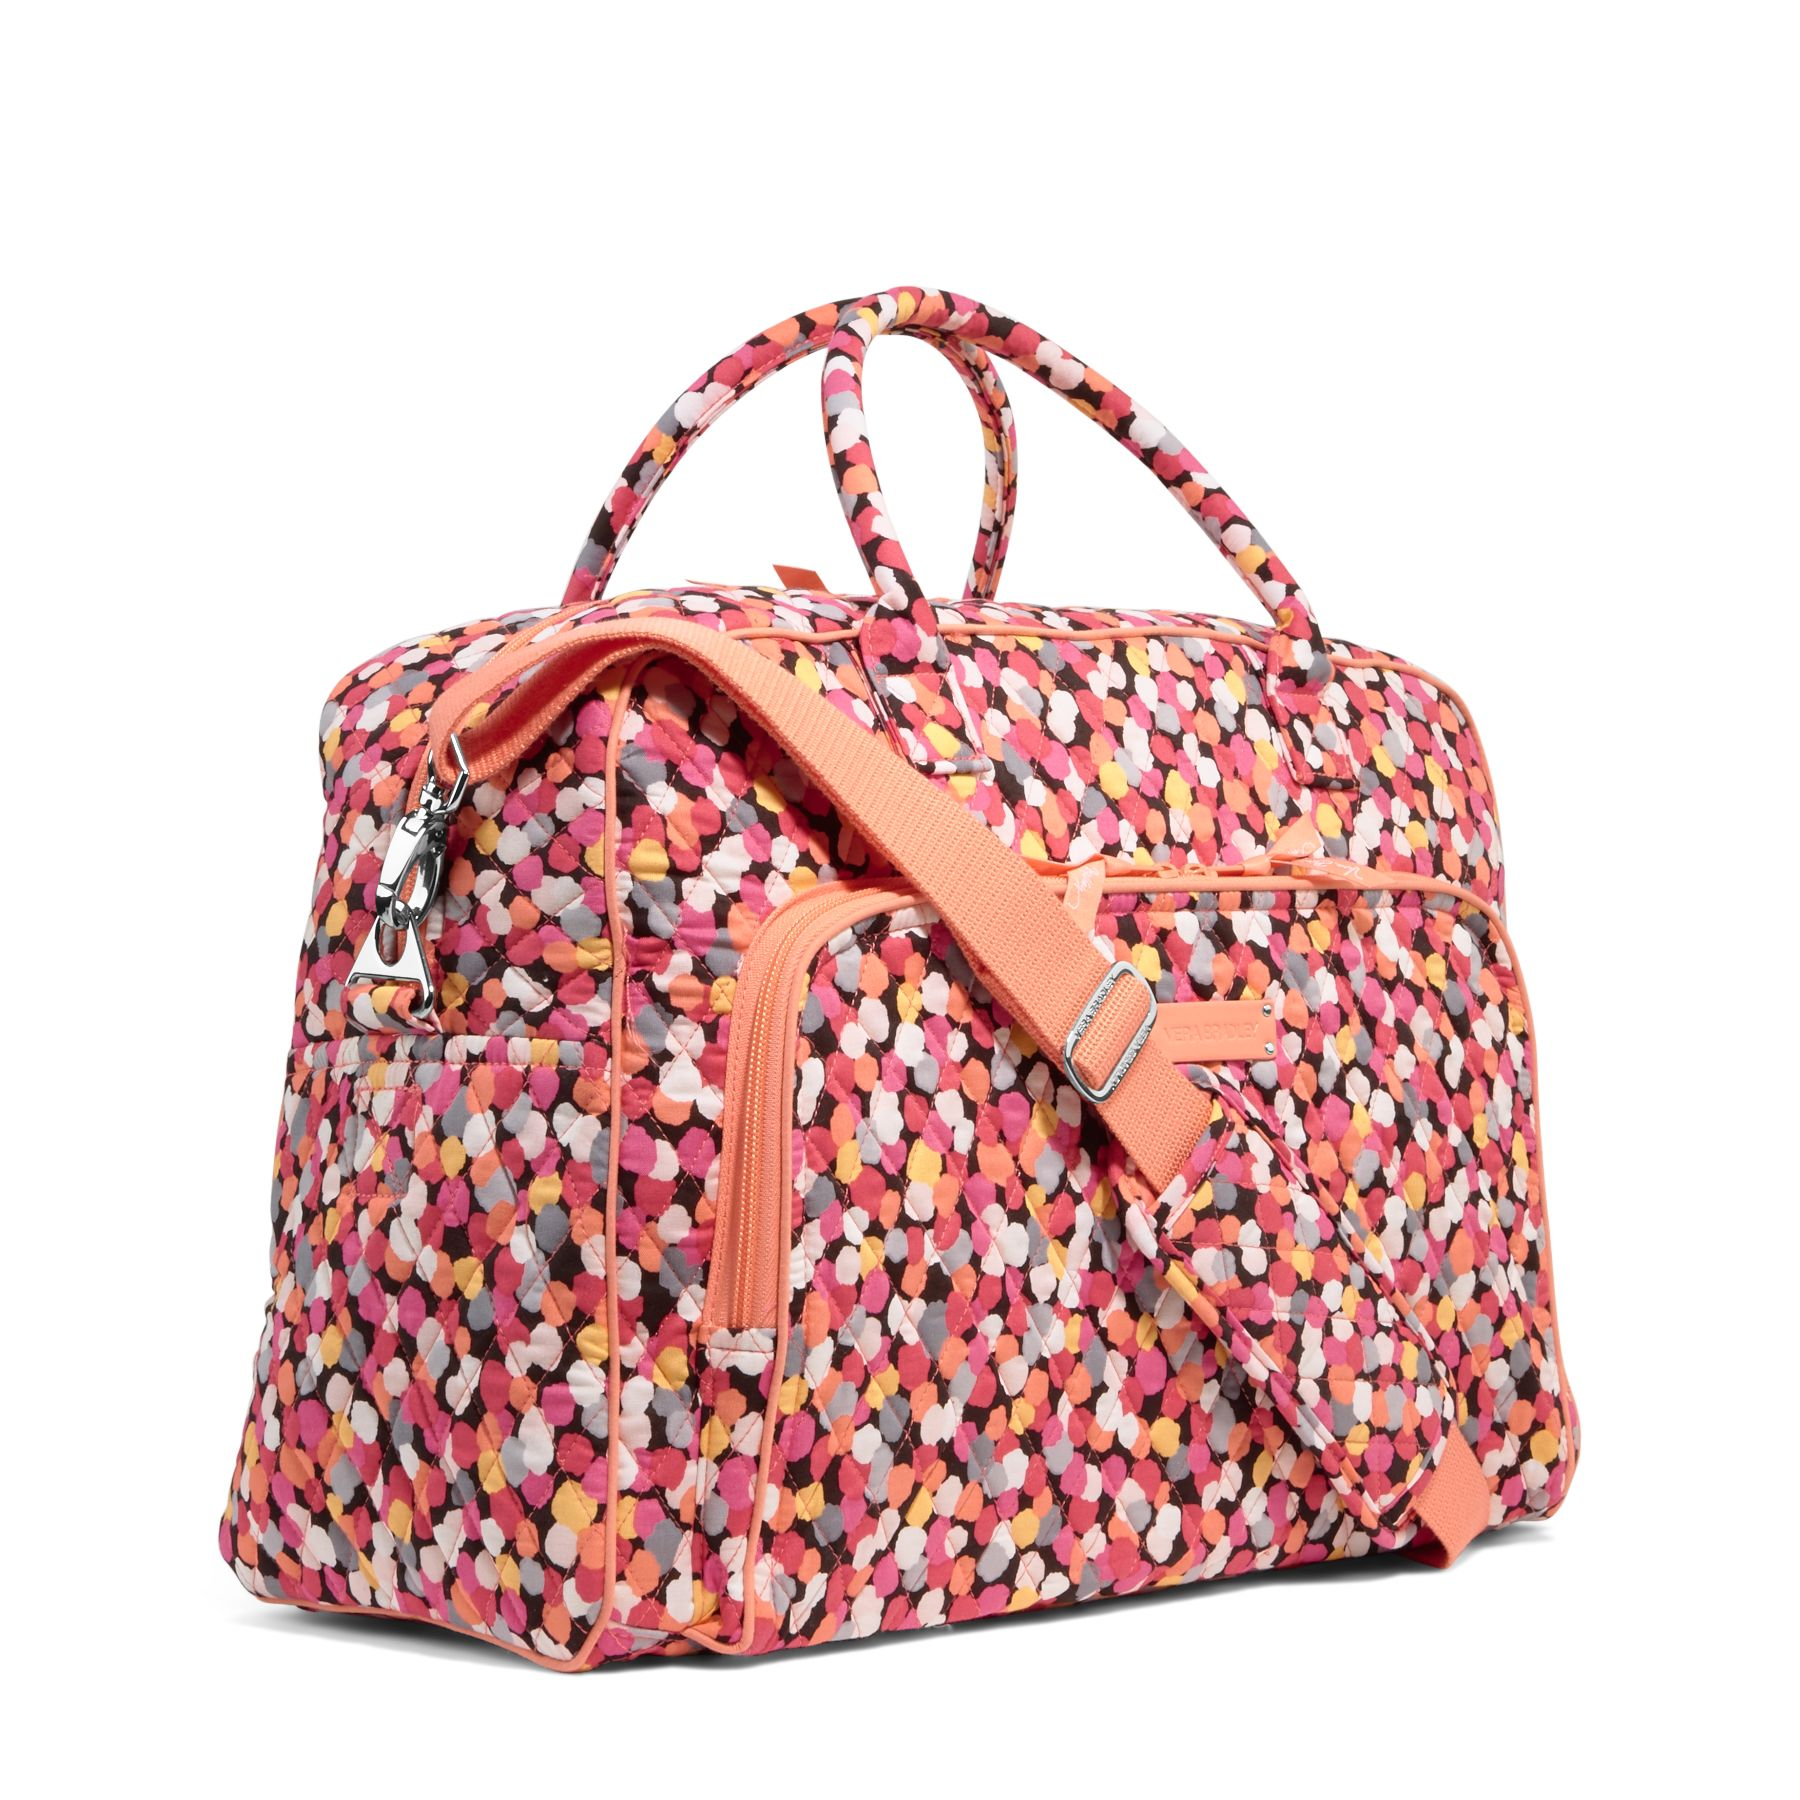 About Vera Bradley Payments Shipping Returns FAQs Where results contain multi-variation listings, the item counts on the page are inclusive of all matching variations that are available. An eBay Store .